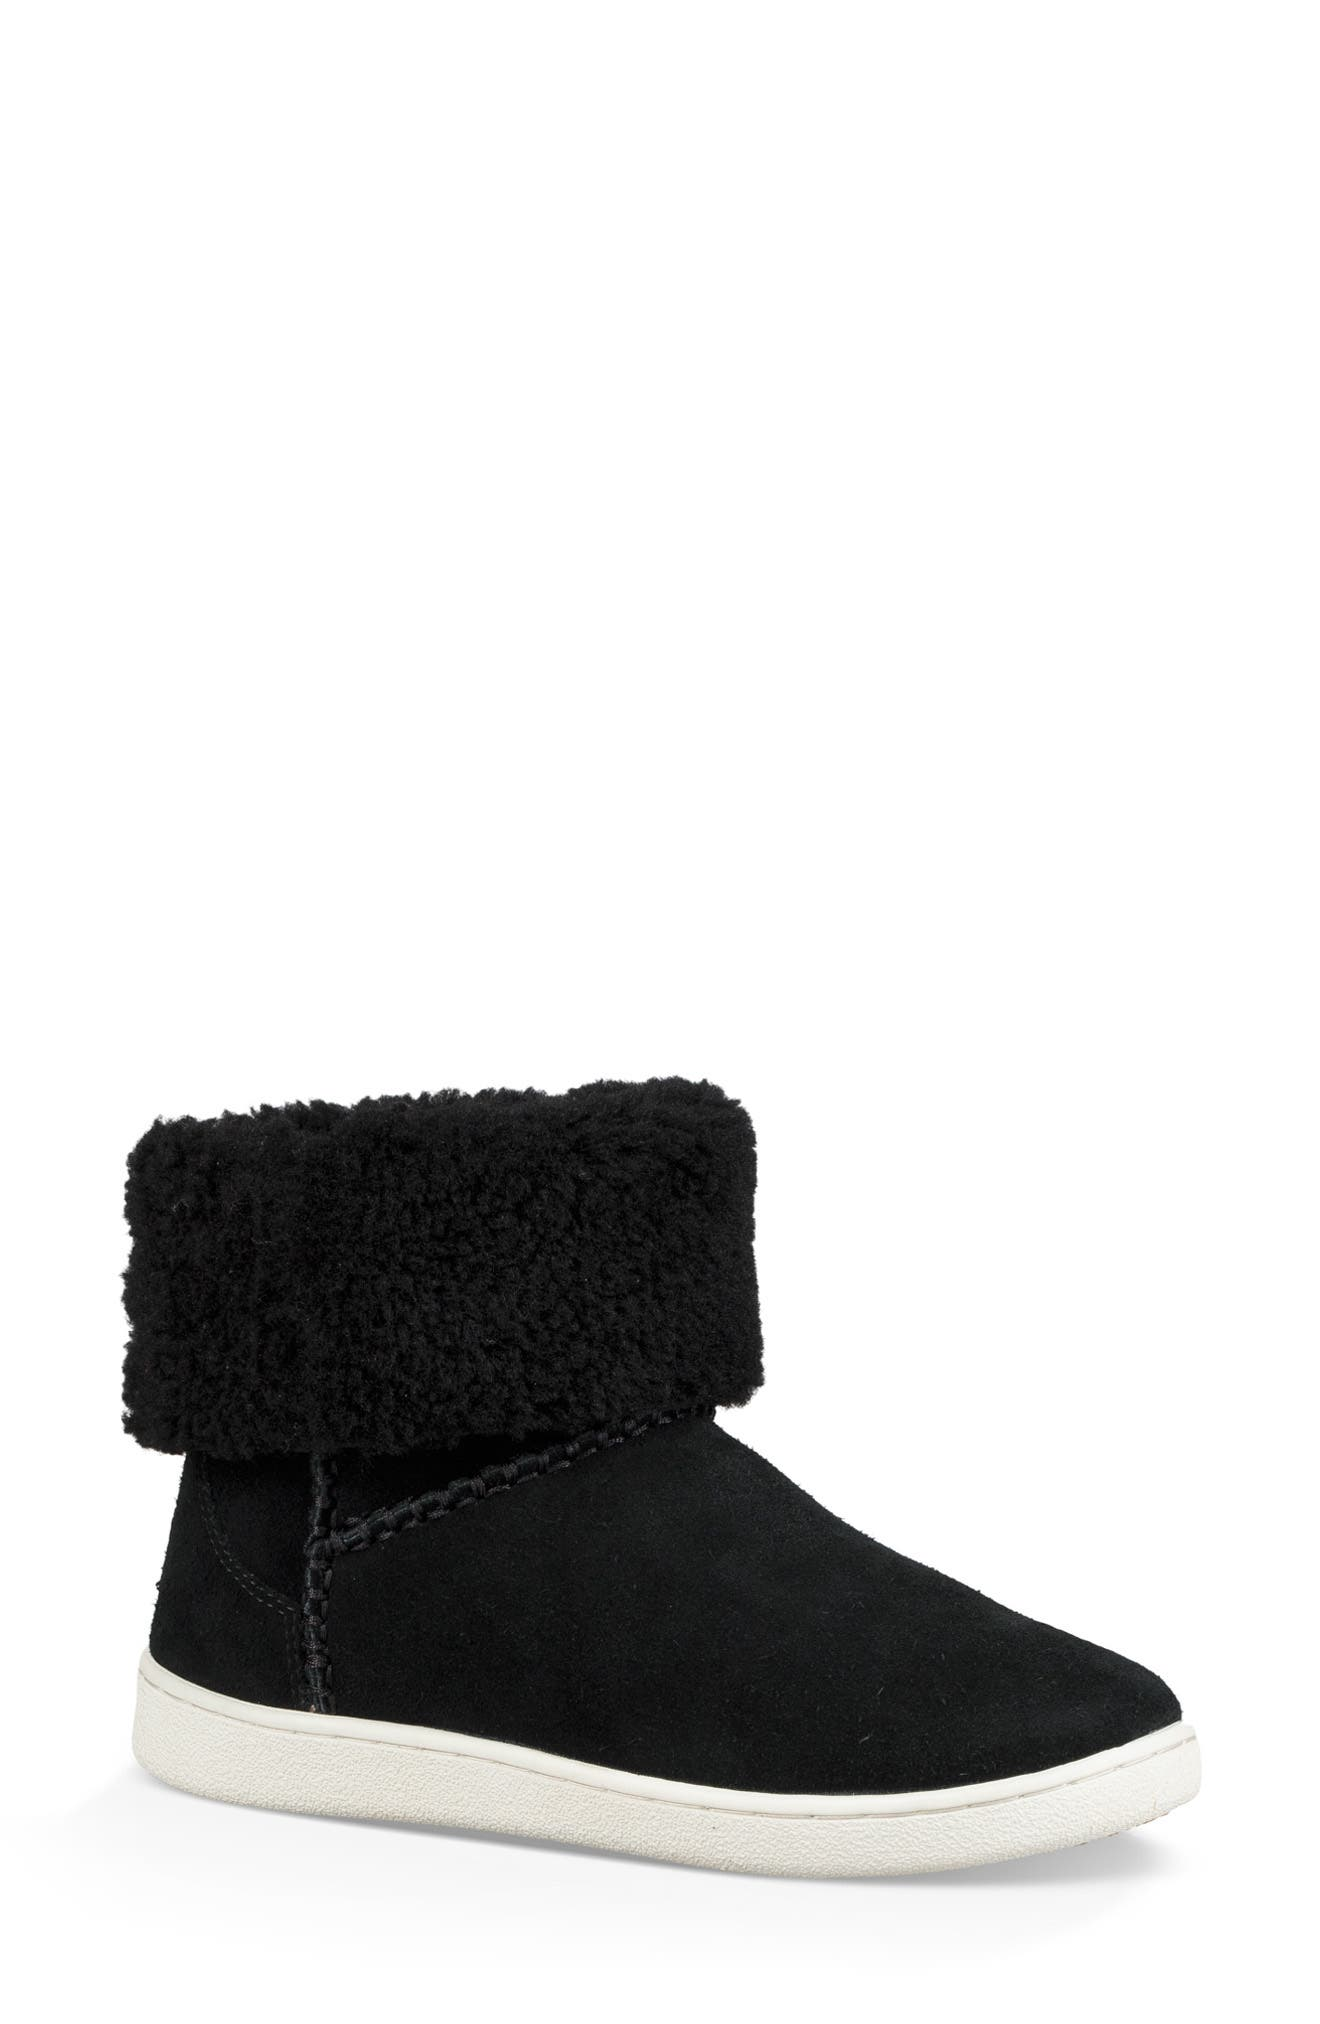 UGG<SUP>®</SUP>, Mika Classic Genuine Shearling Sneaker, Main thumbnail 1, color, BLACK